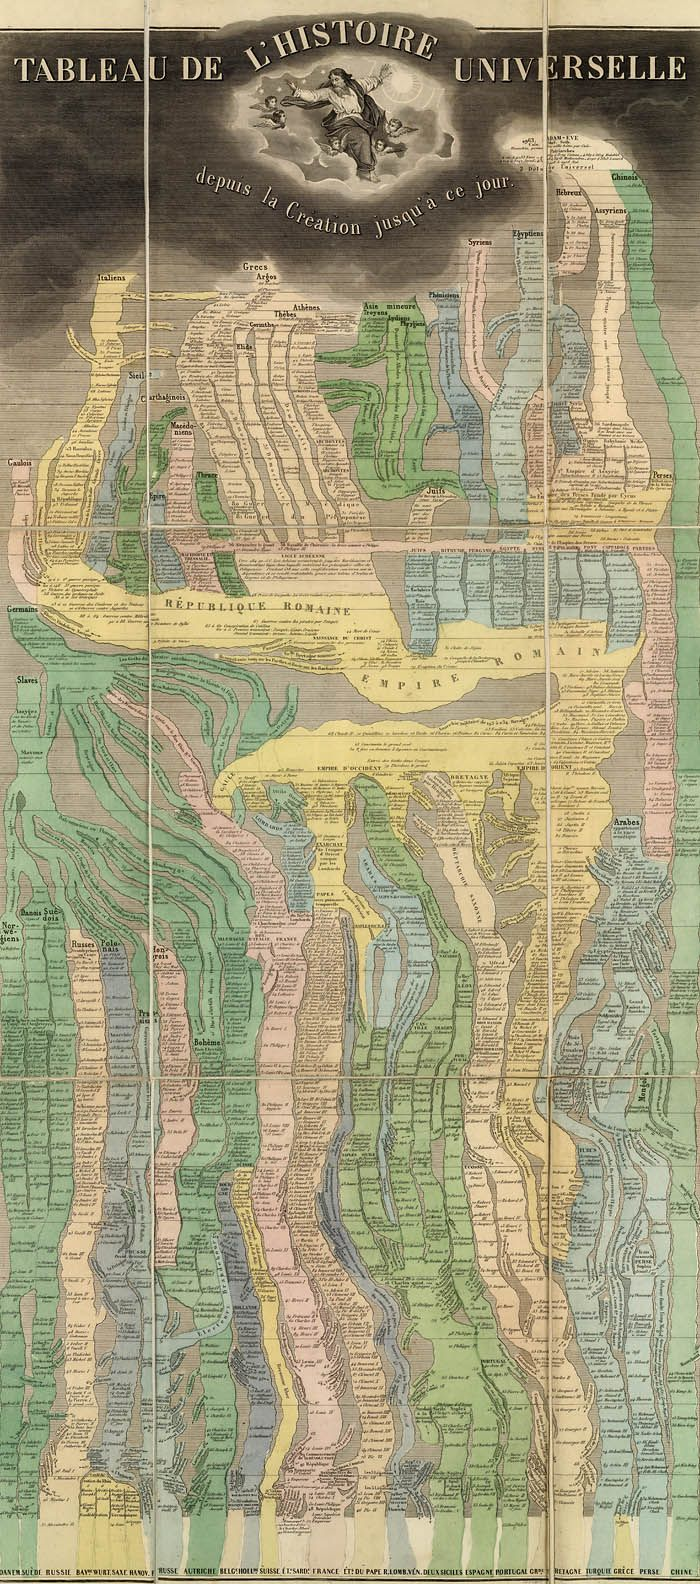 David rumsey historical map collection timeline maps history david rumsey historical map collection timeline maps gumiabroncs Choice Image